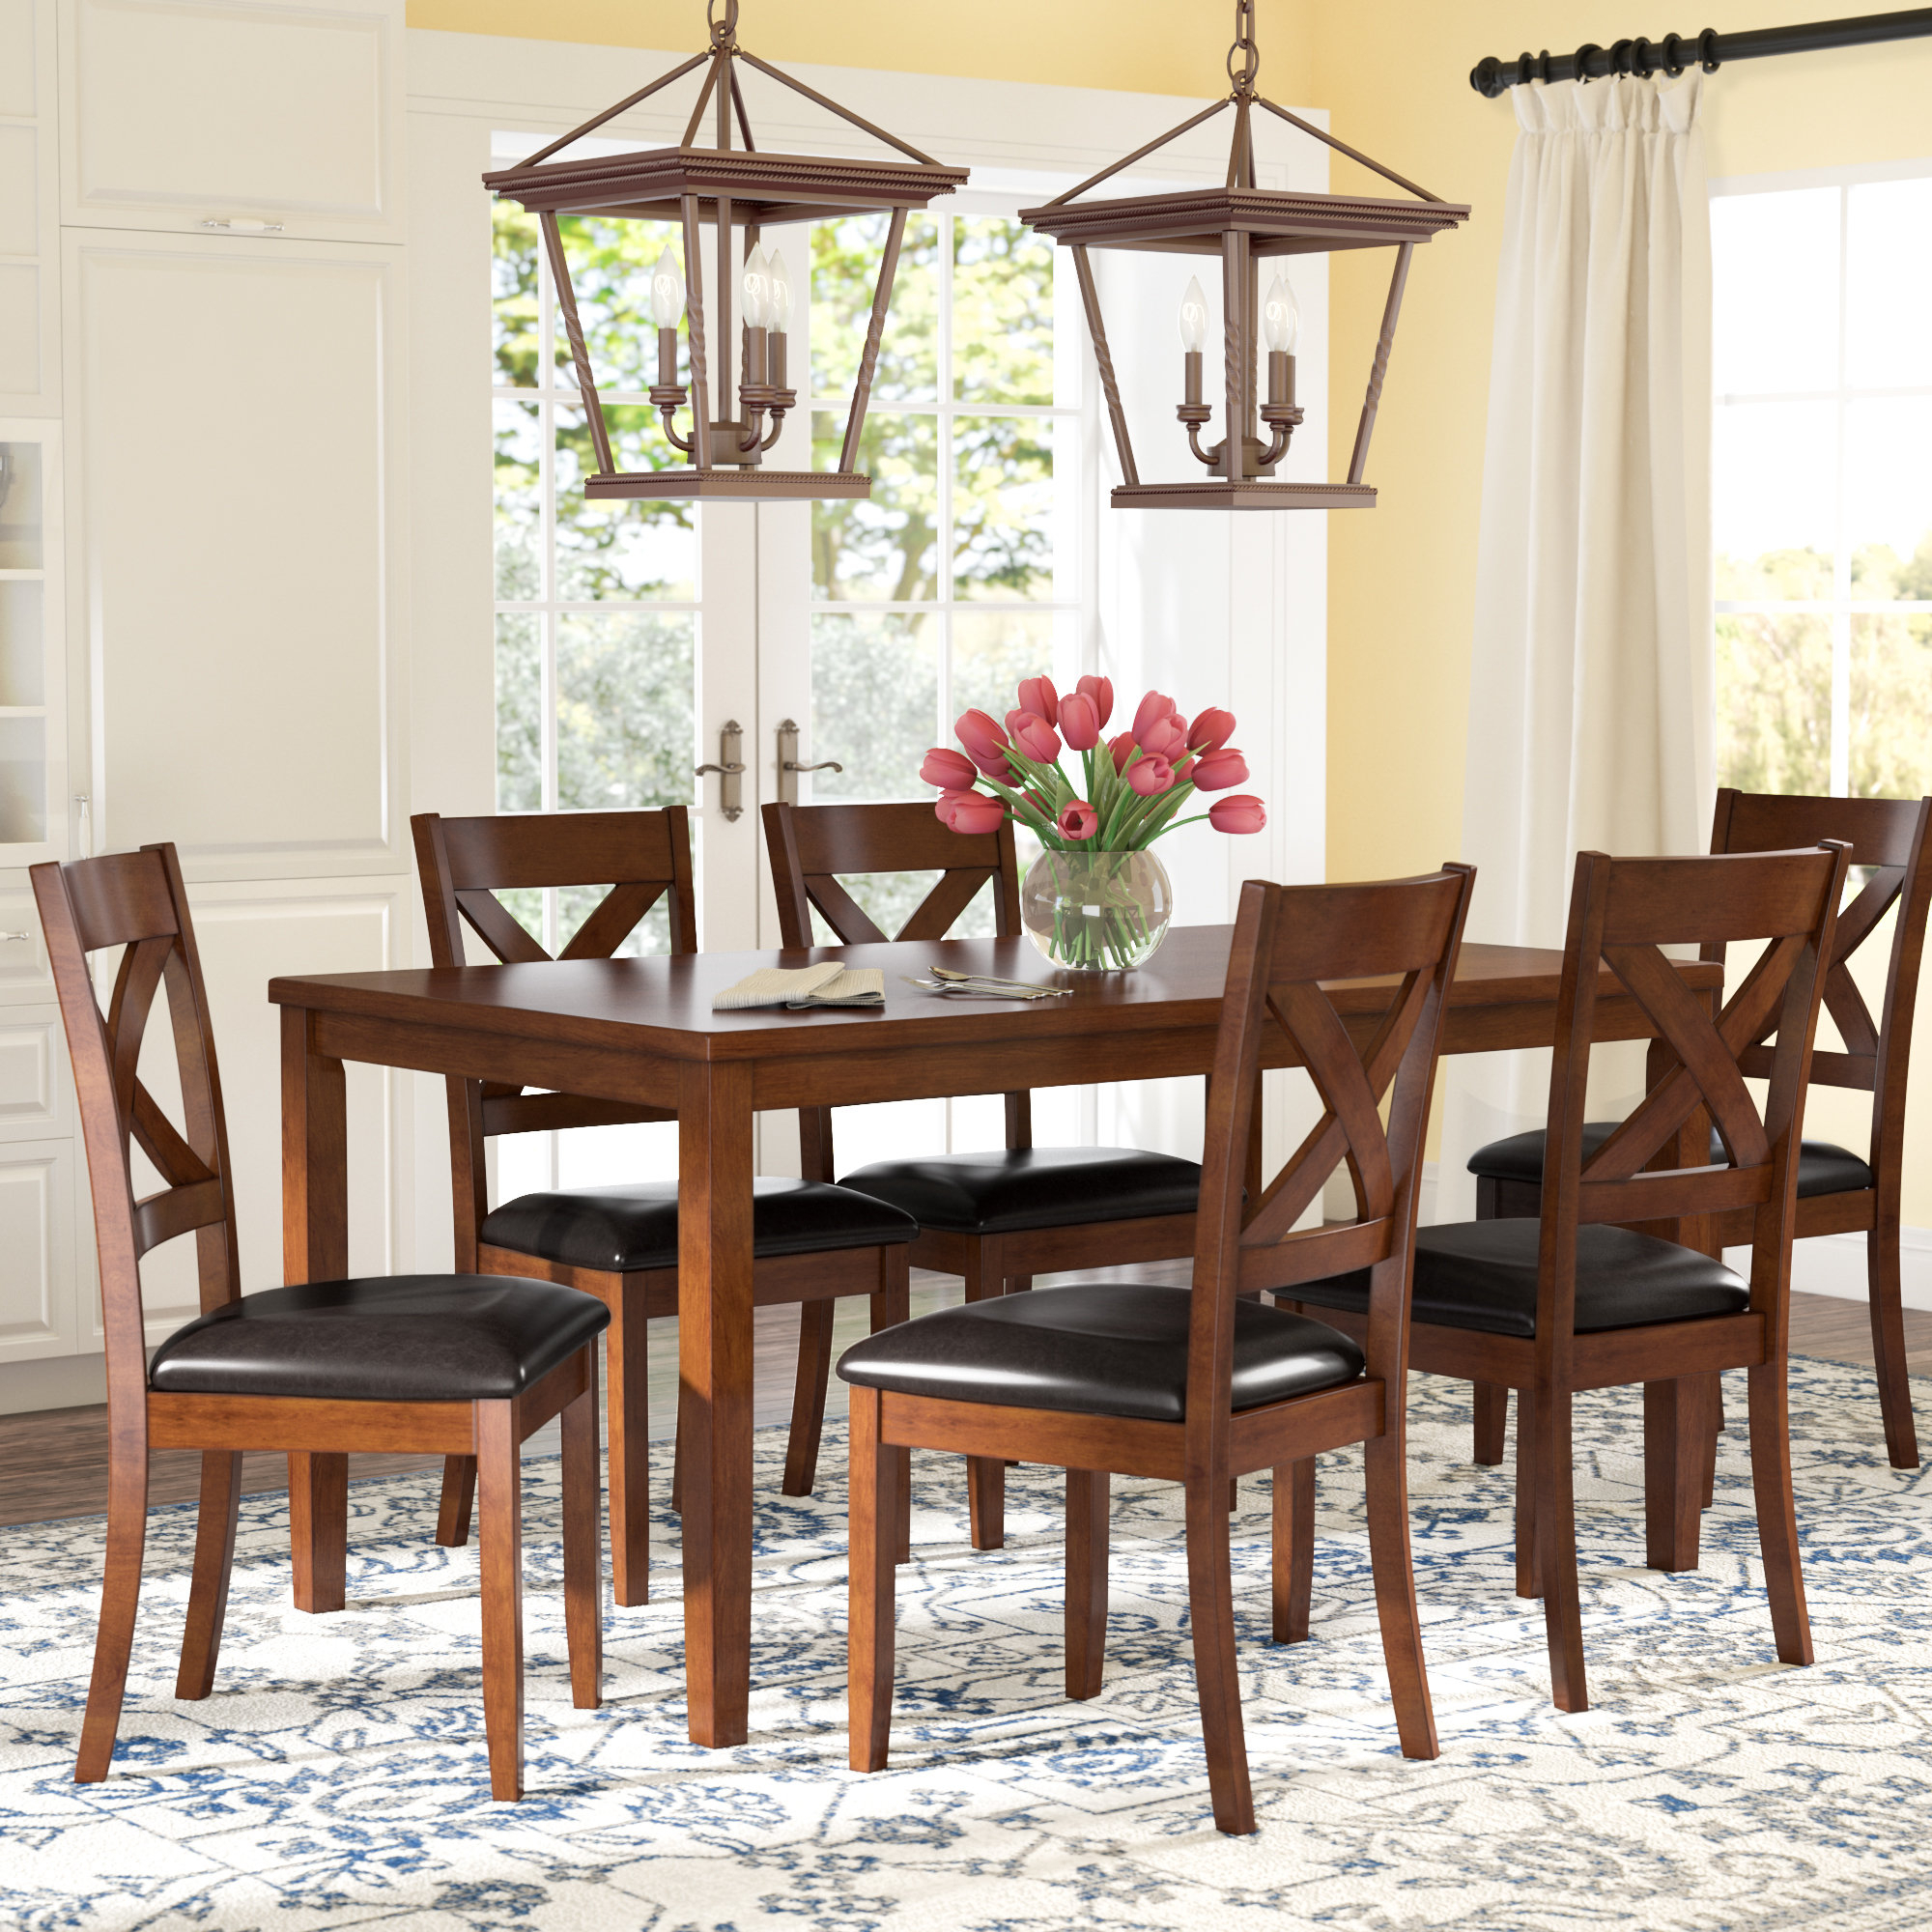 Darby Home Co | Wayfair with Chari Media Center Tables (Image 6 of 30)